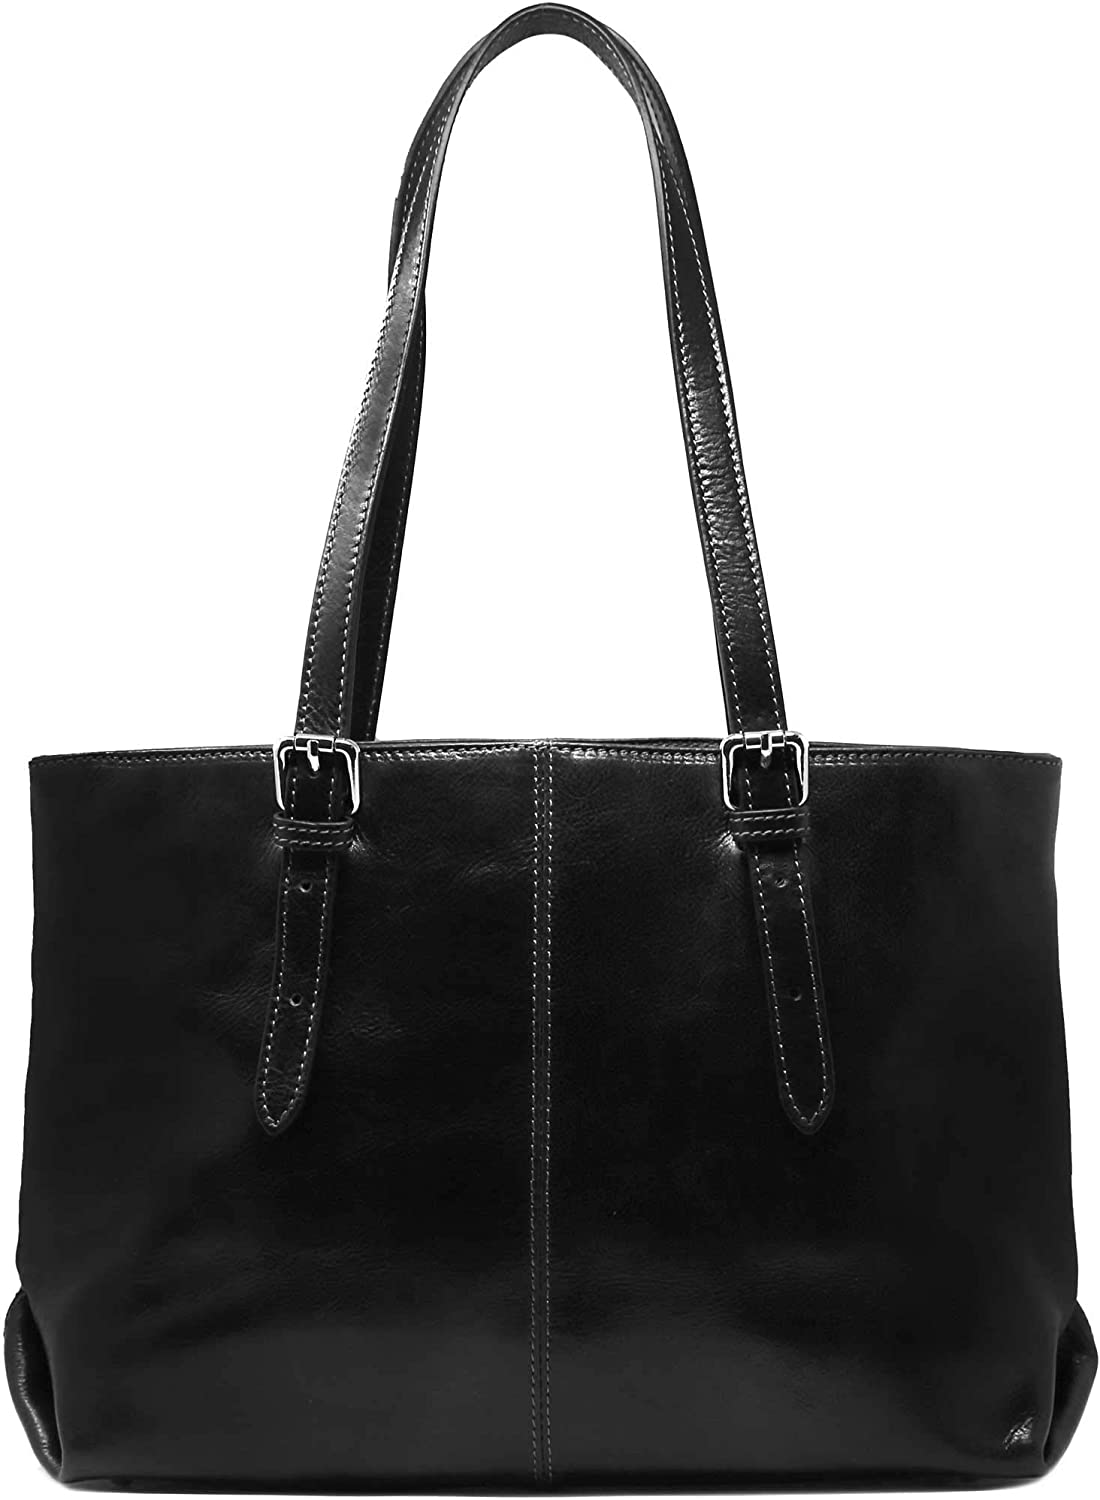 Floto Venezia Italian Leather Shopping Tote Bag Shoulder Bag Women's (Black)